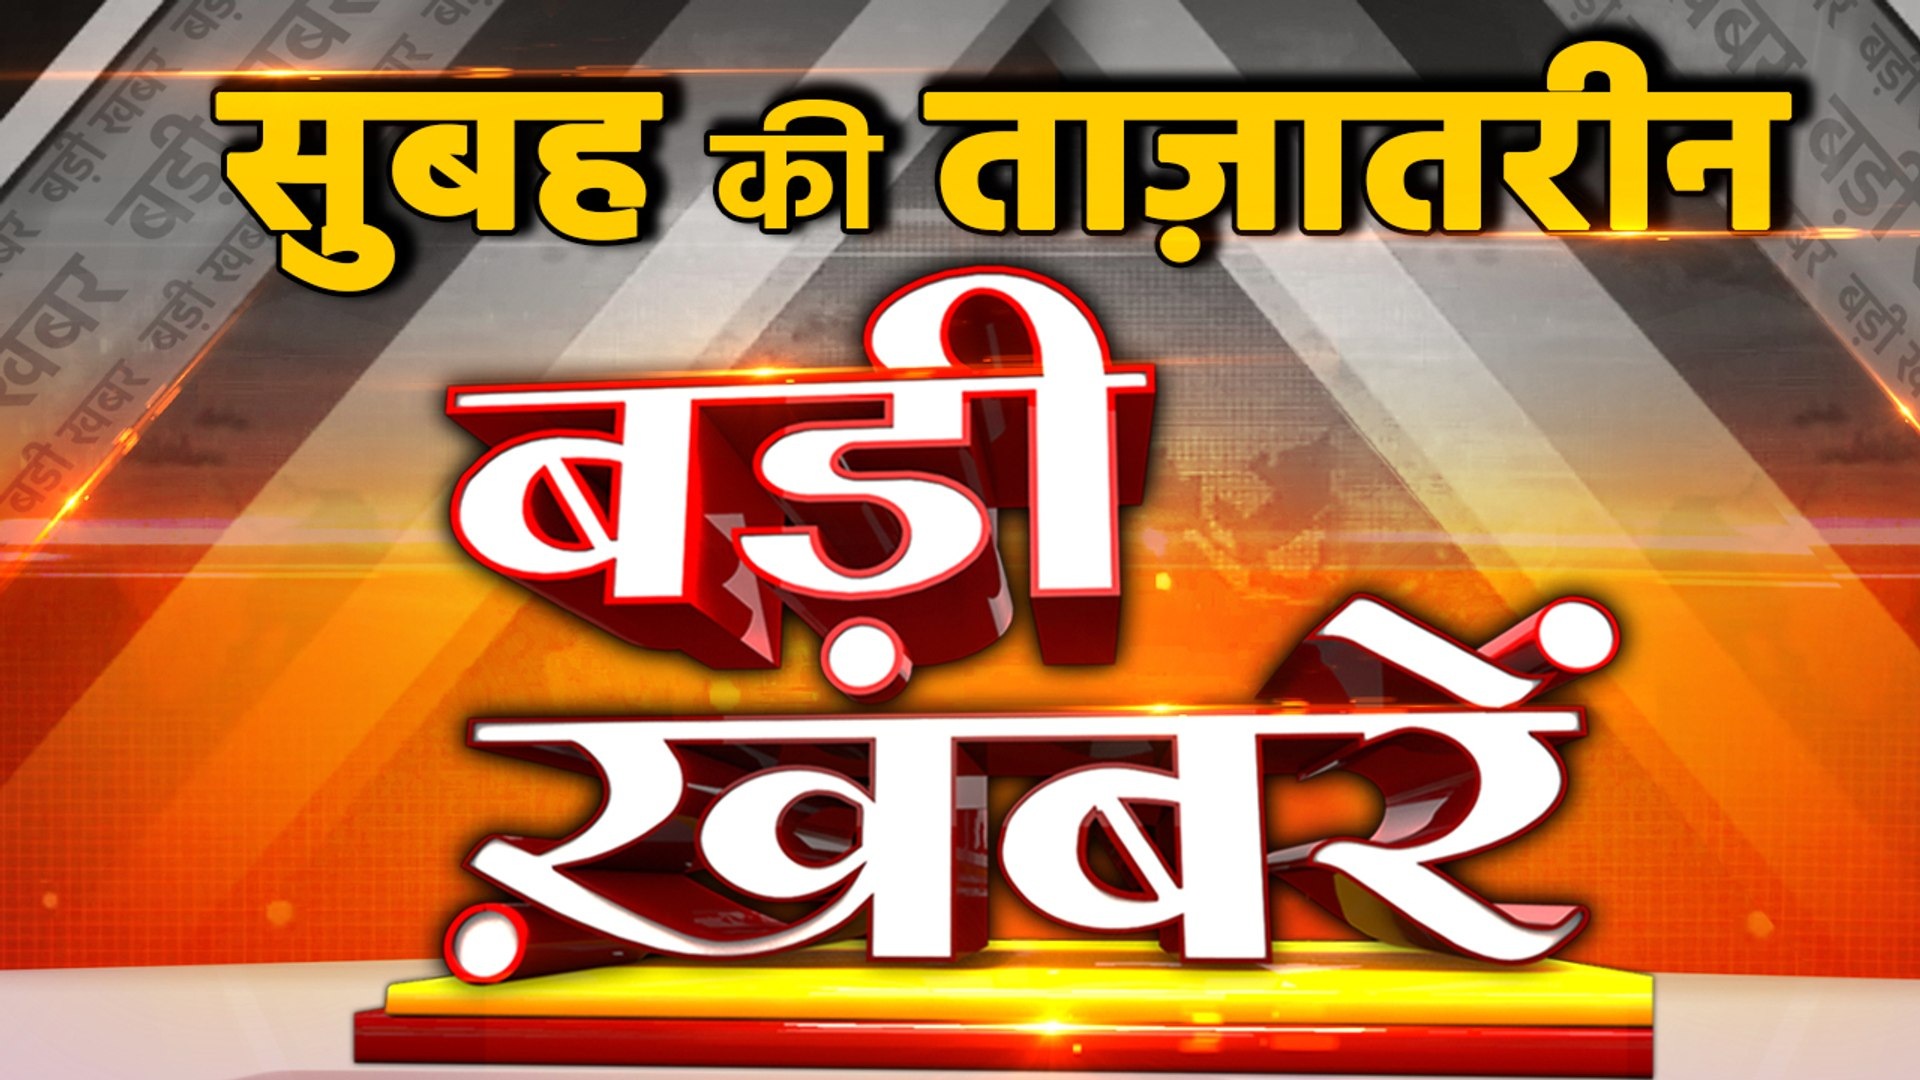 News Bulletin Today : Top News | Latest News | Top Headlines | India Top News | वनइंडिया हिंदी